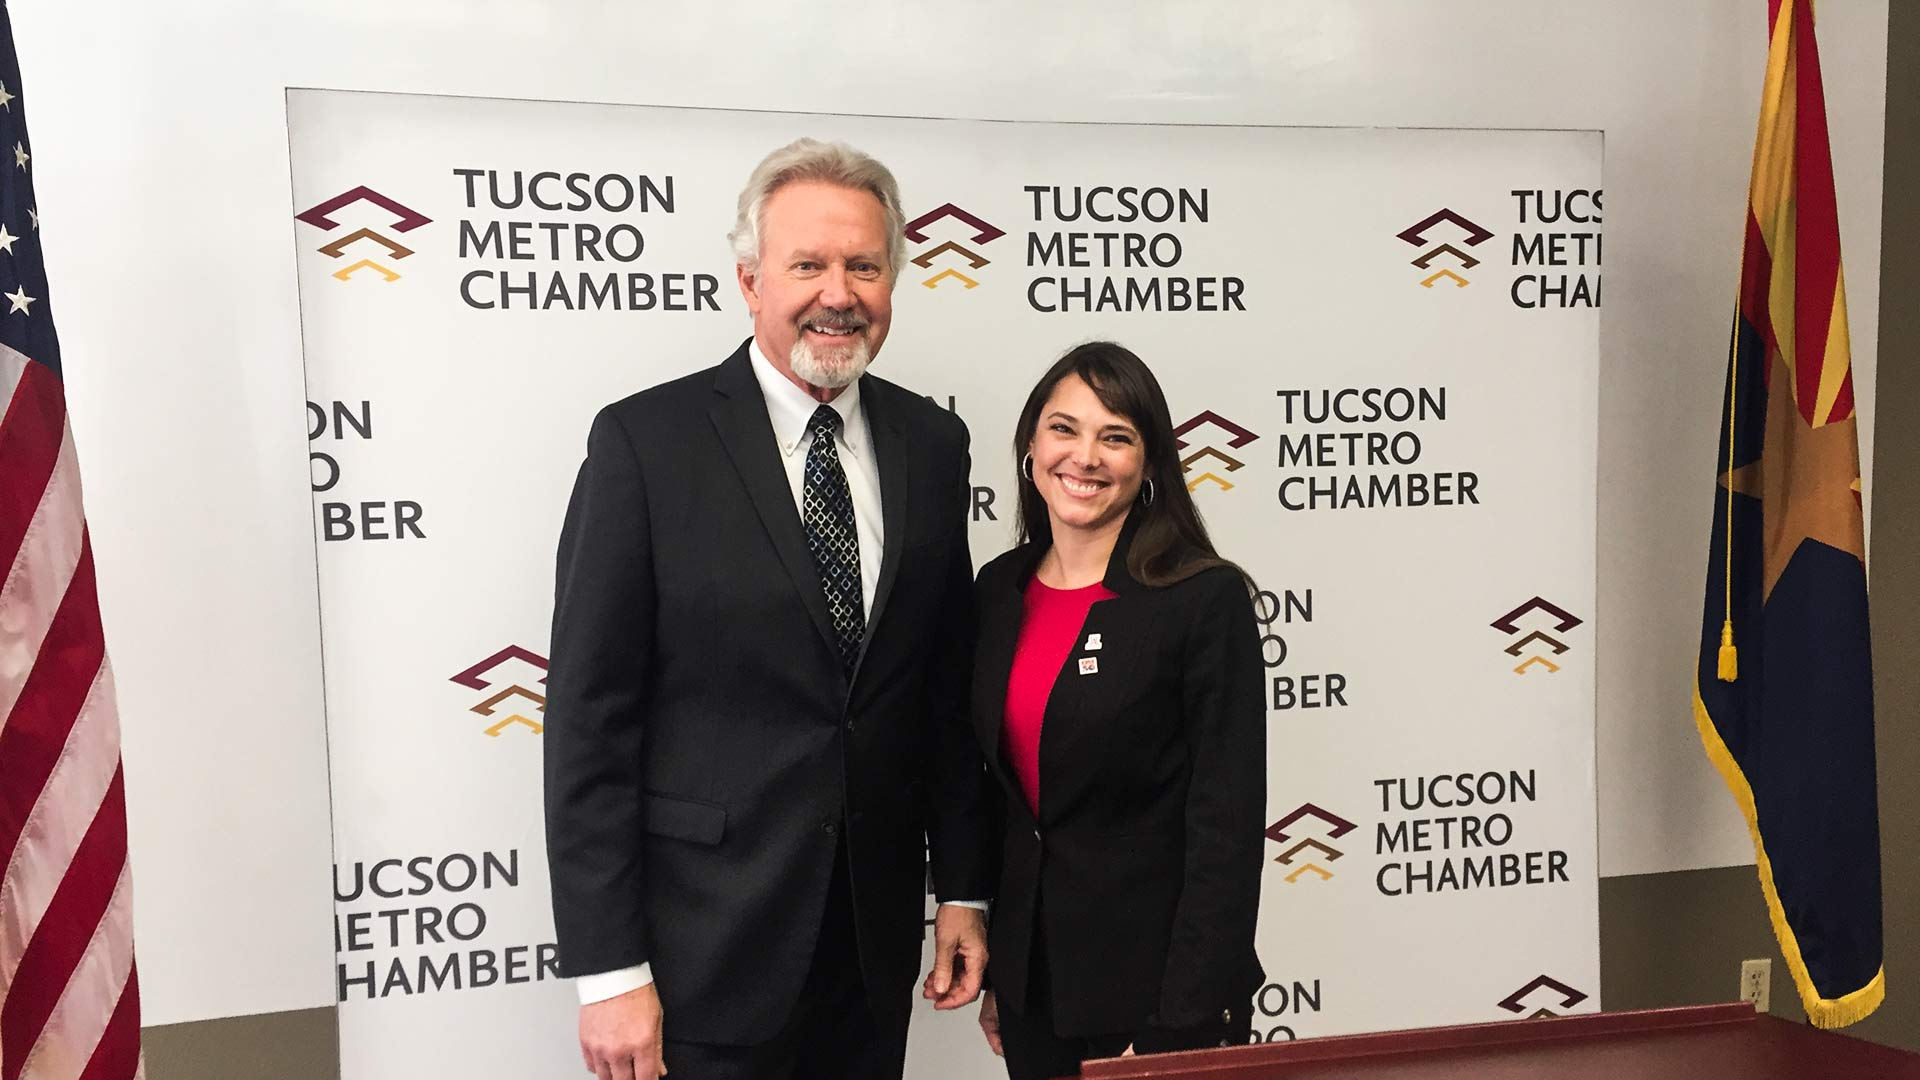 Amber Smith, right, takes over from Mike Varney, left, as president and CEO of the Tucson Metro Chamber of Commerce.